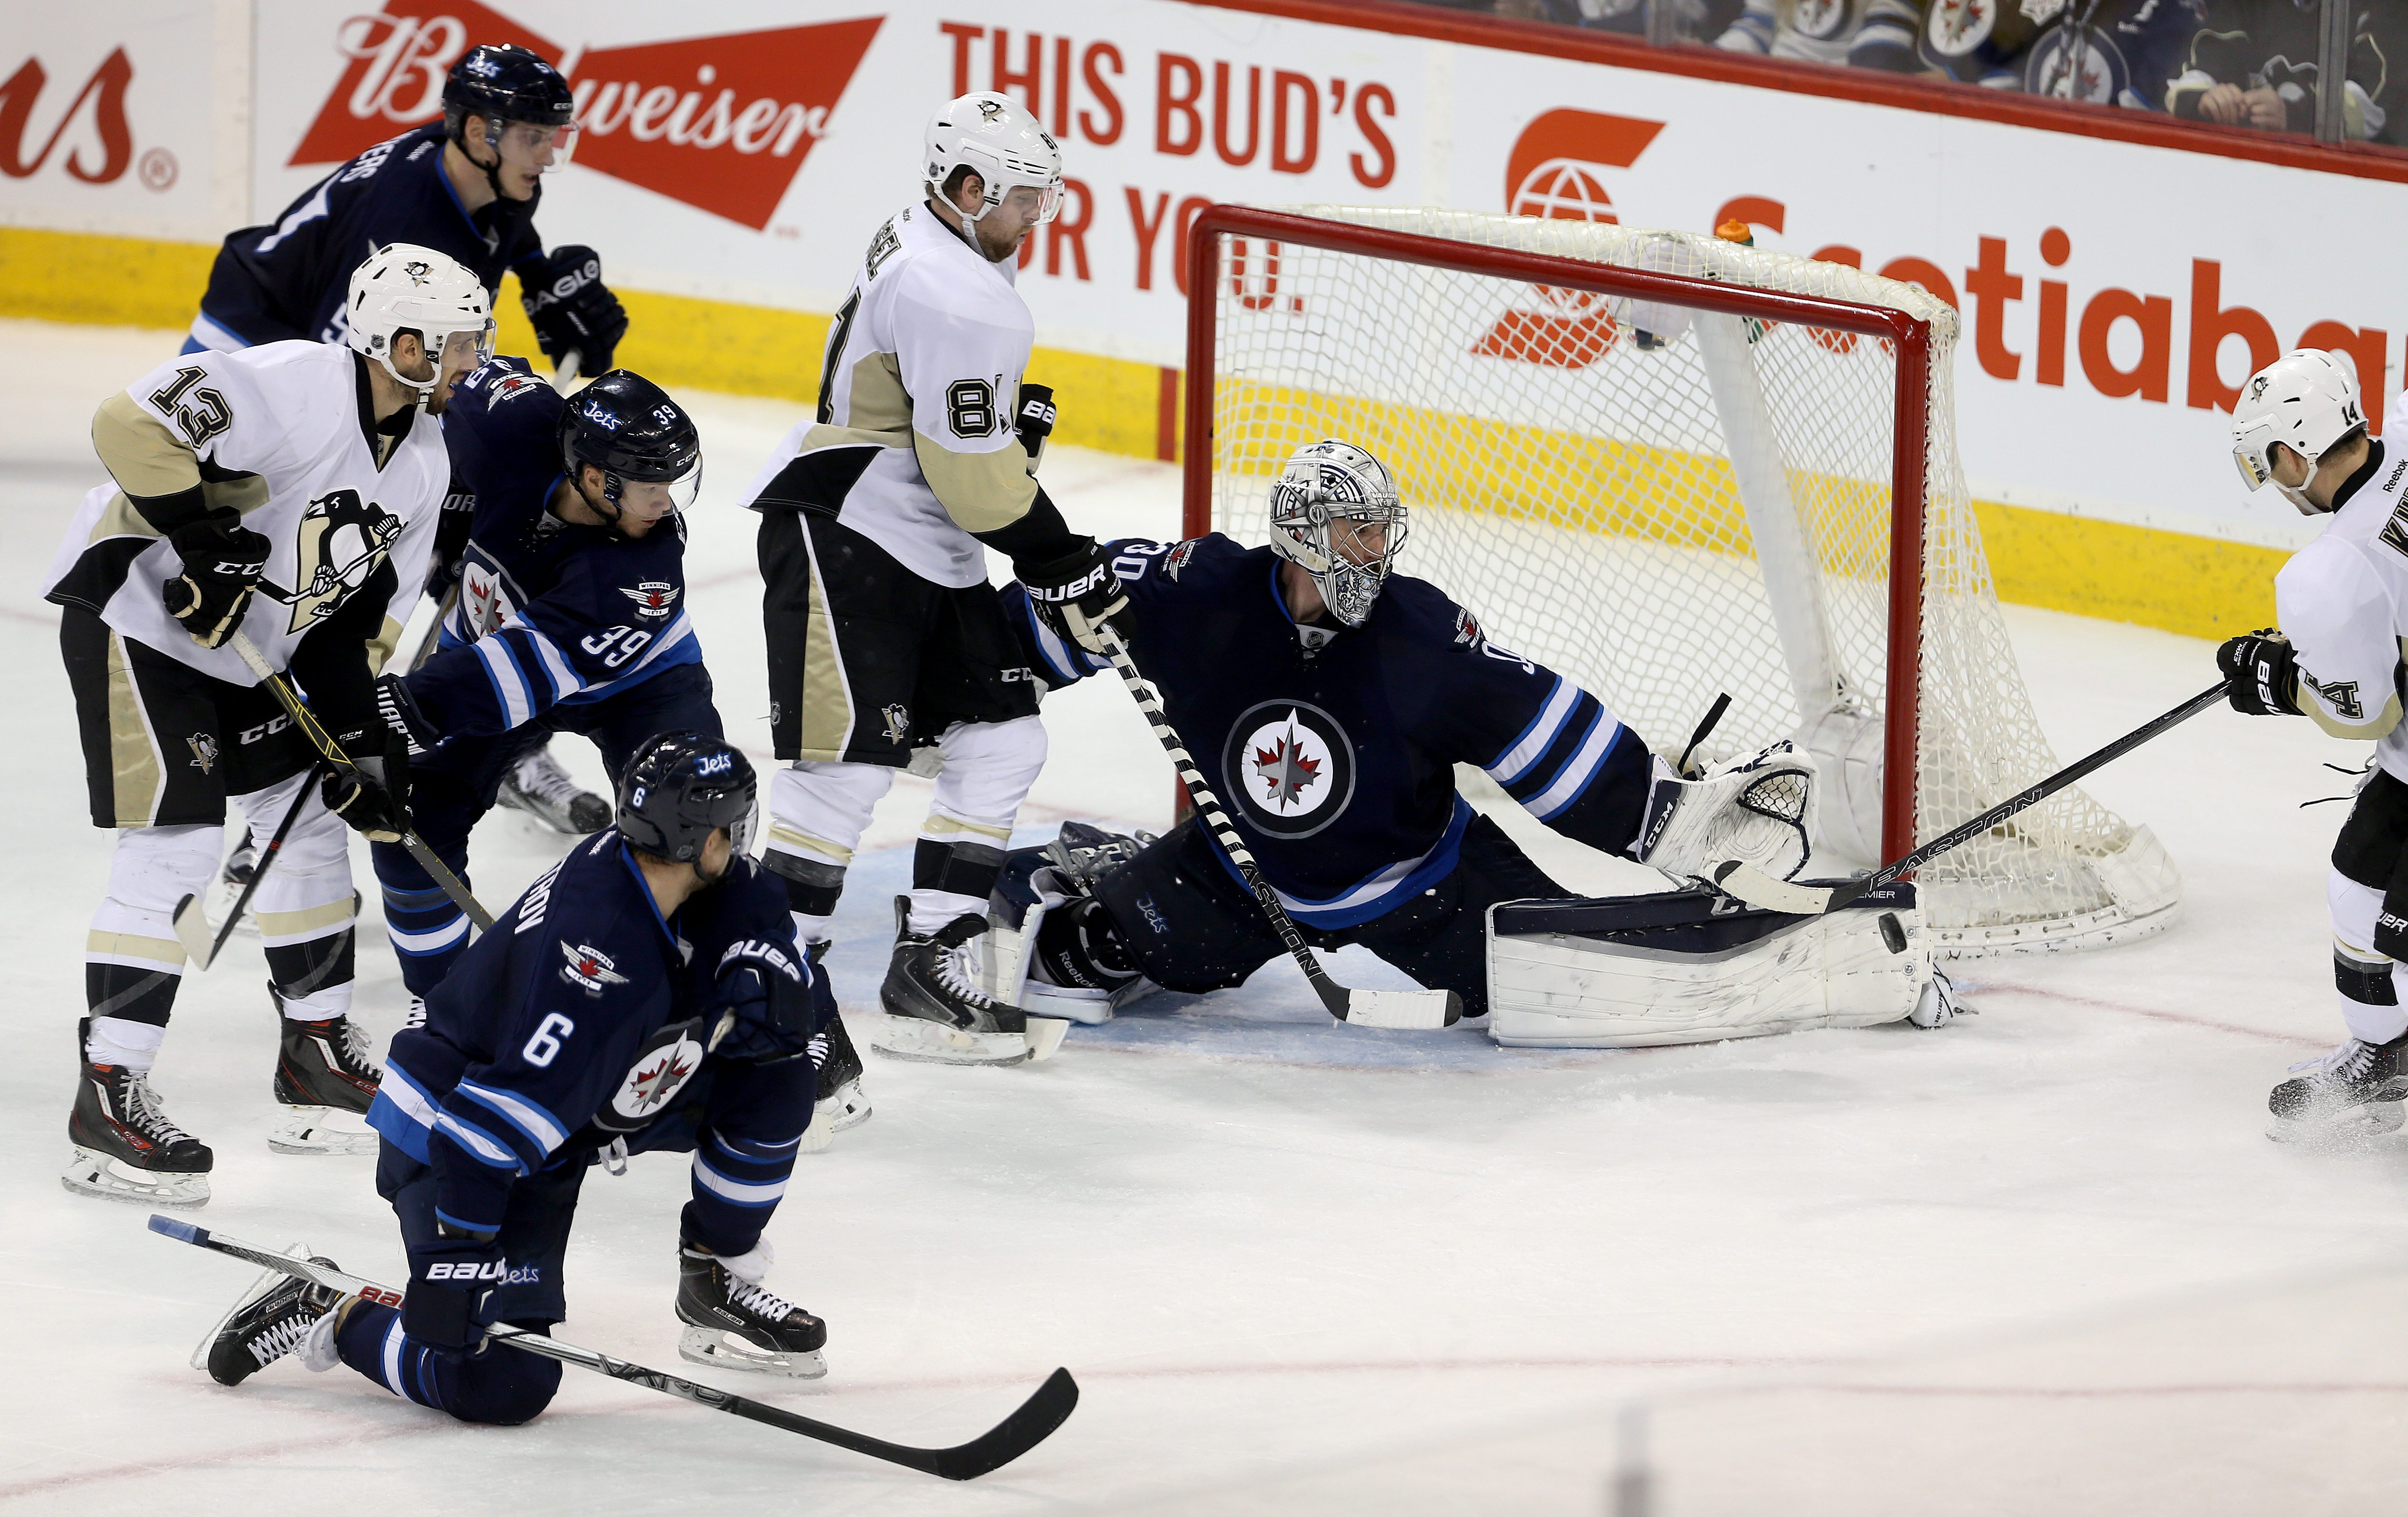 Winnipeg Jets' goaltender Connor Hellebuyck (30) stops the puck during the third period of an NHL hockey game against the Pittsburgh Penguins in Winnipeg, Manitoba, Sunday, Dec. 27, 2015. The Jets won 1-0. (Trevor Hagan/The Canadian Press via AP) MANDATOR